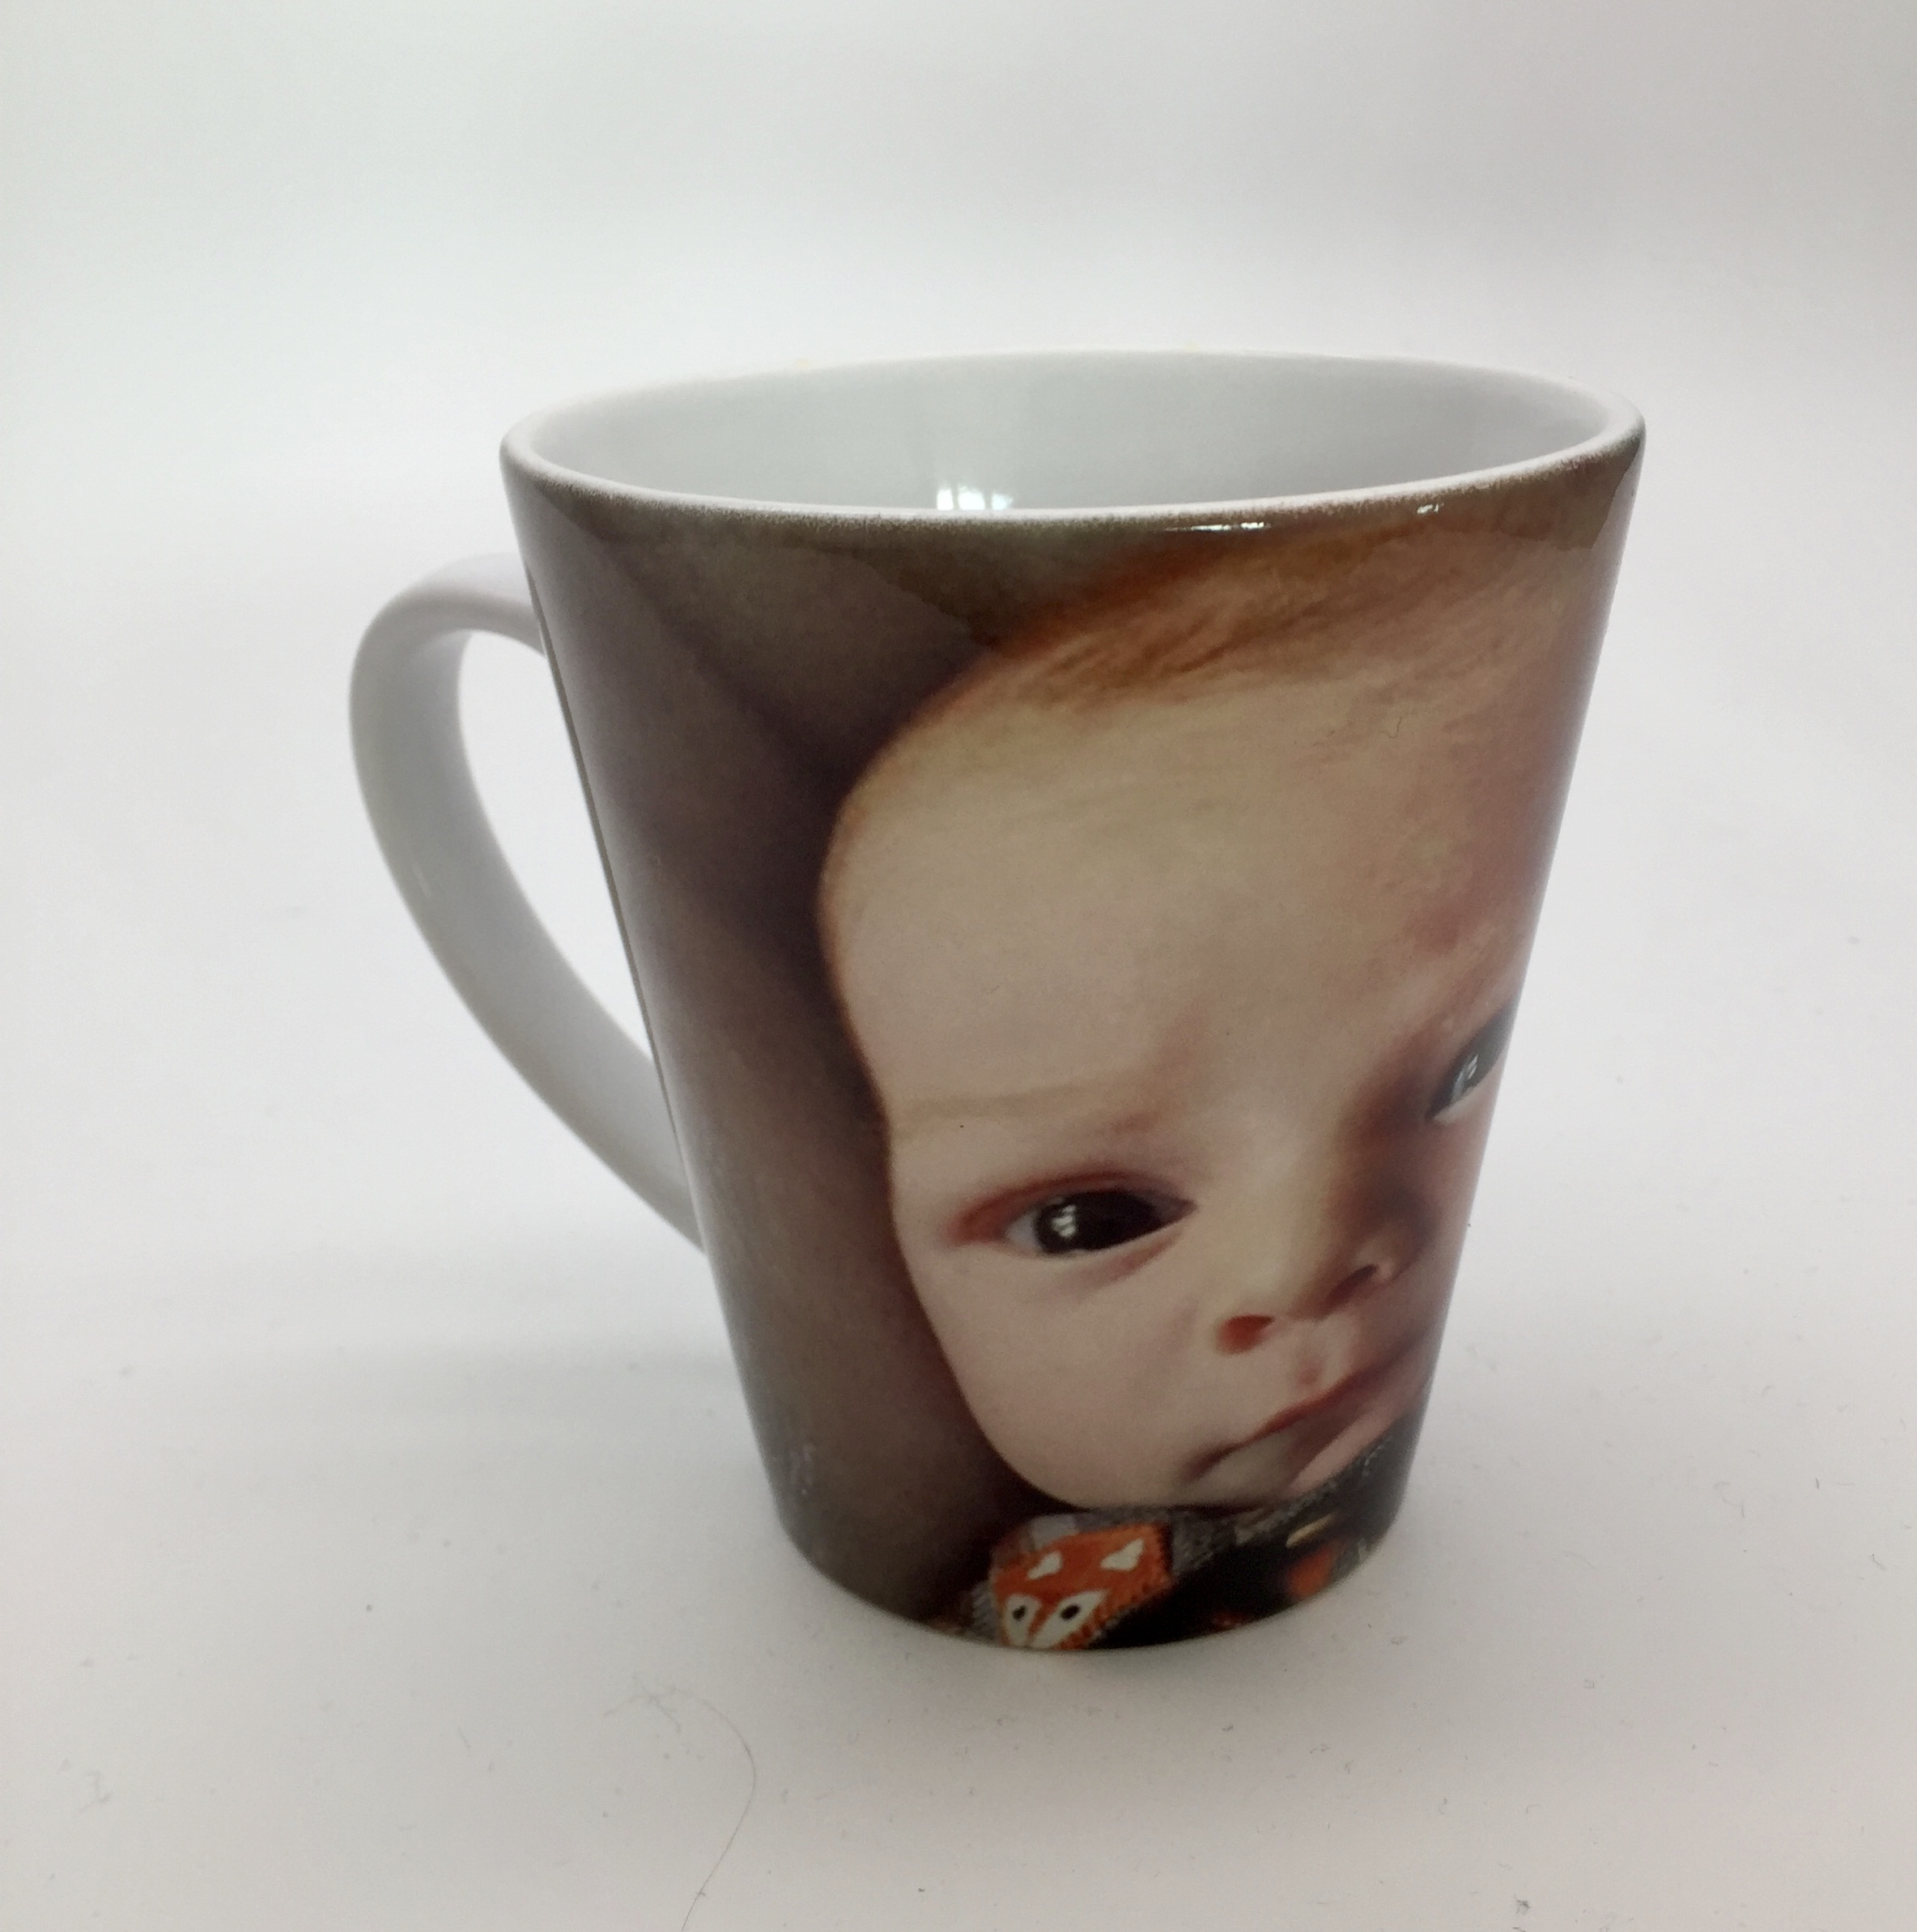 Personalised Mug Review